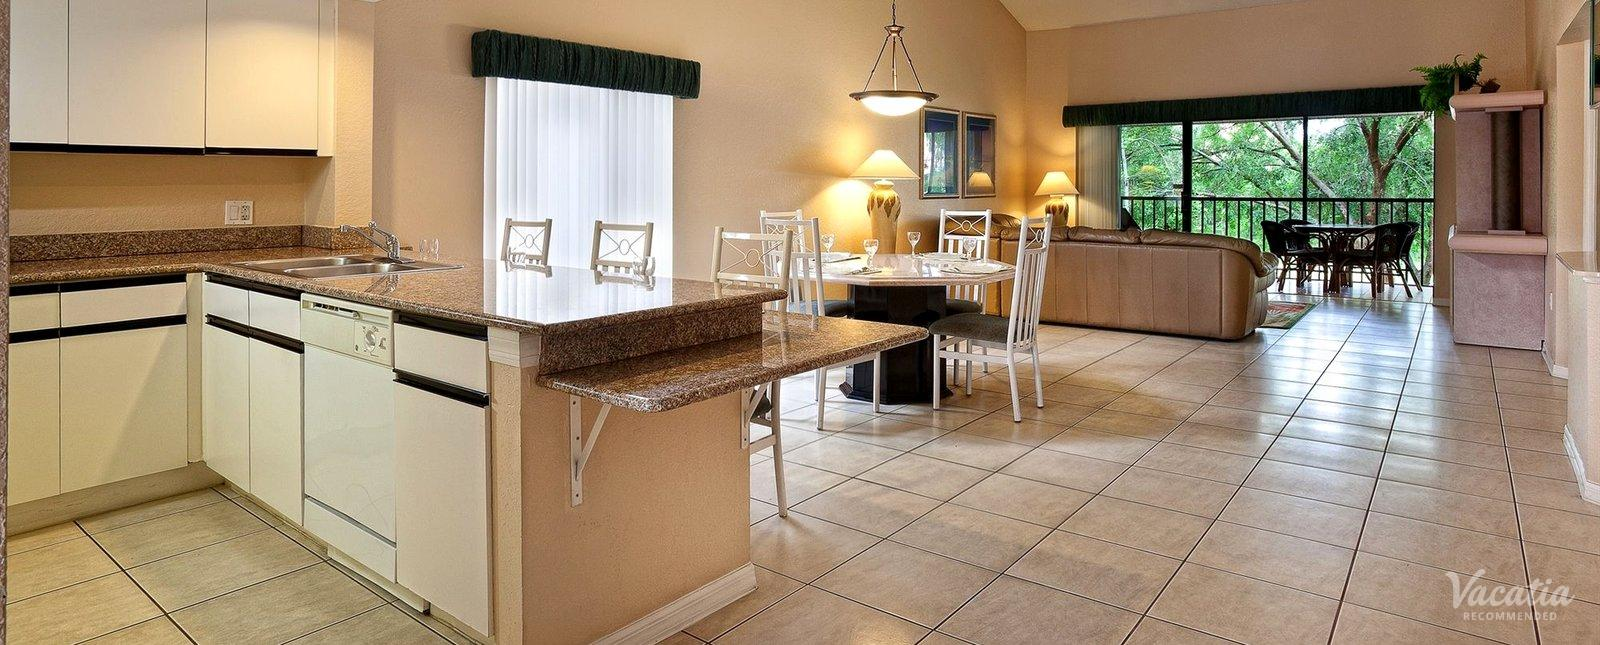 Westgate Vacation Villas Orlando Condo Rentals Full Kitchen